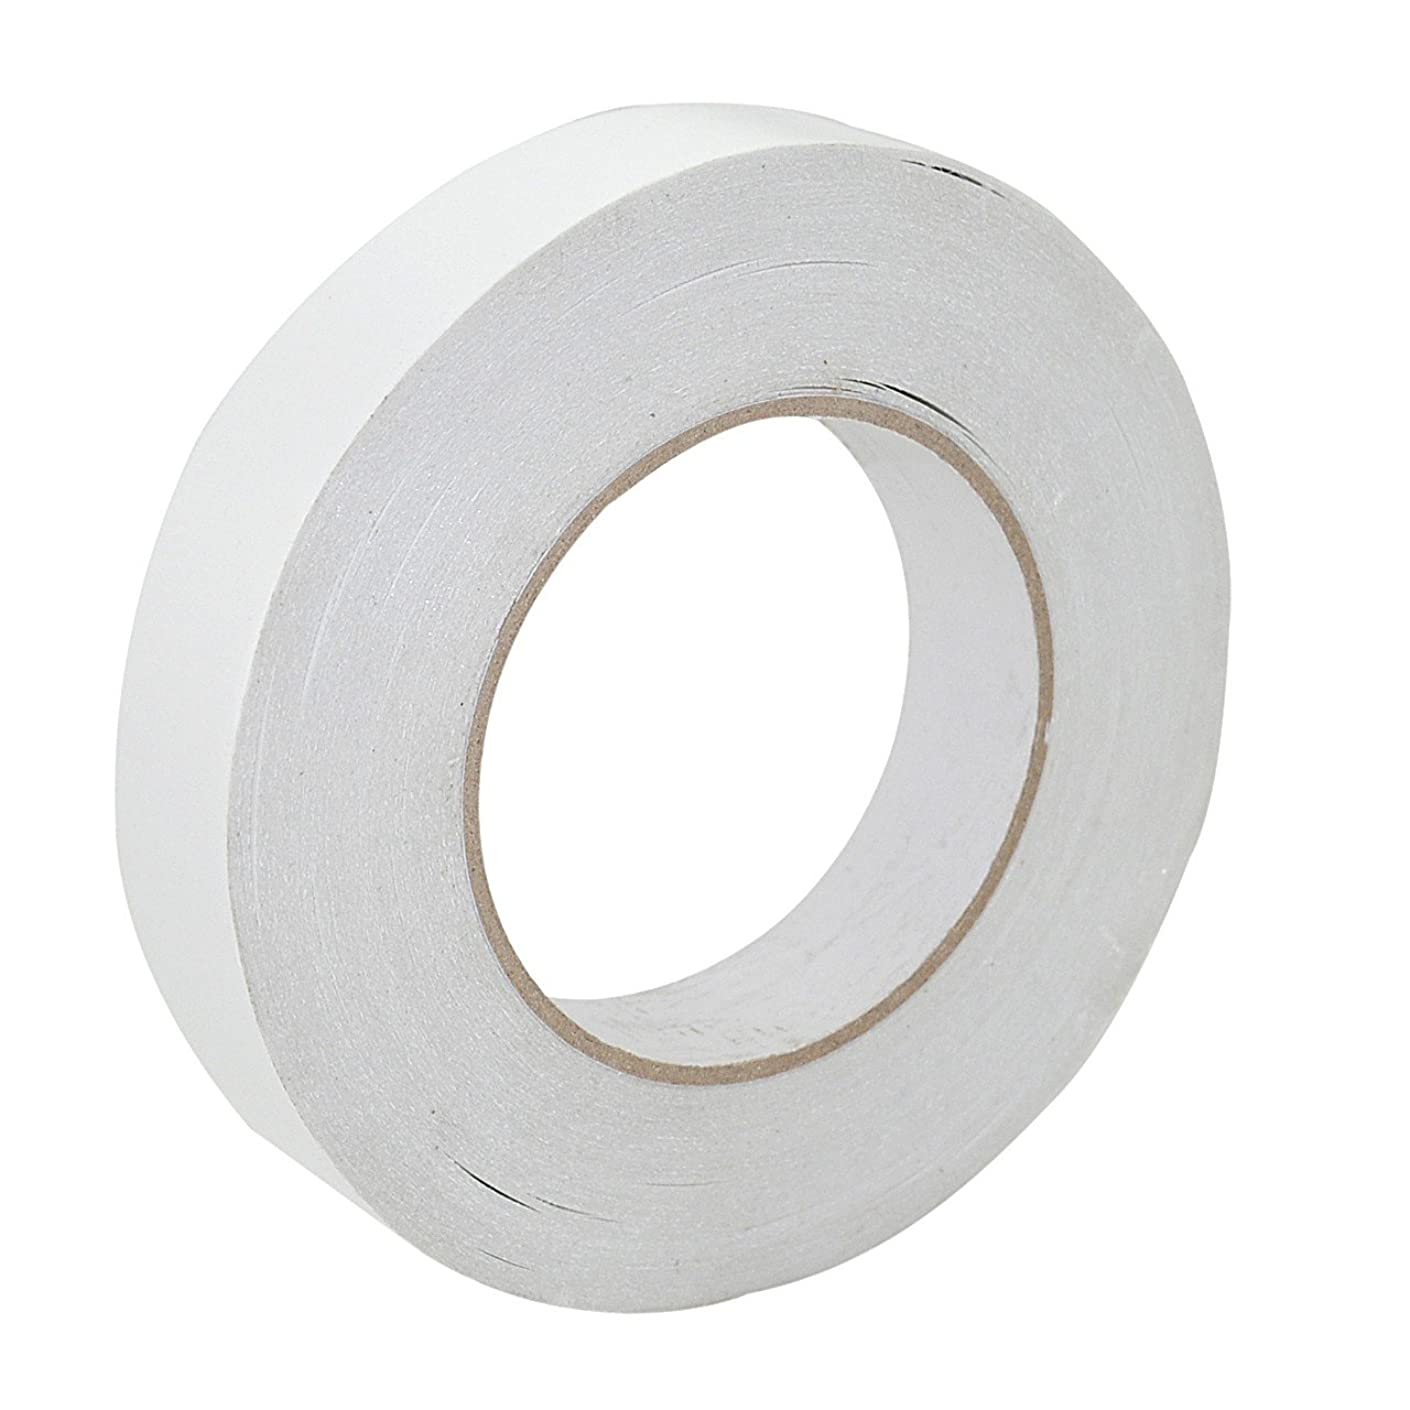 Double Sided Tape - Adhesive Tape - Heavy Duty - YazyCraft - 1 Inch